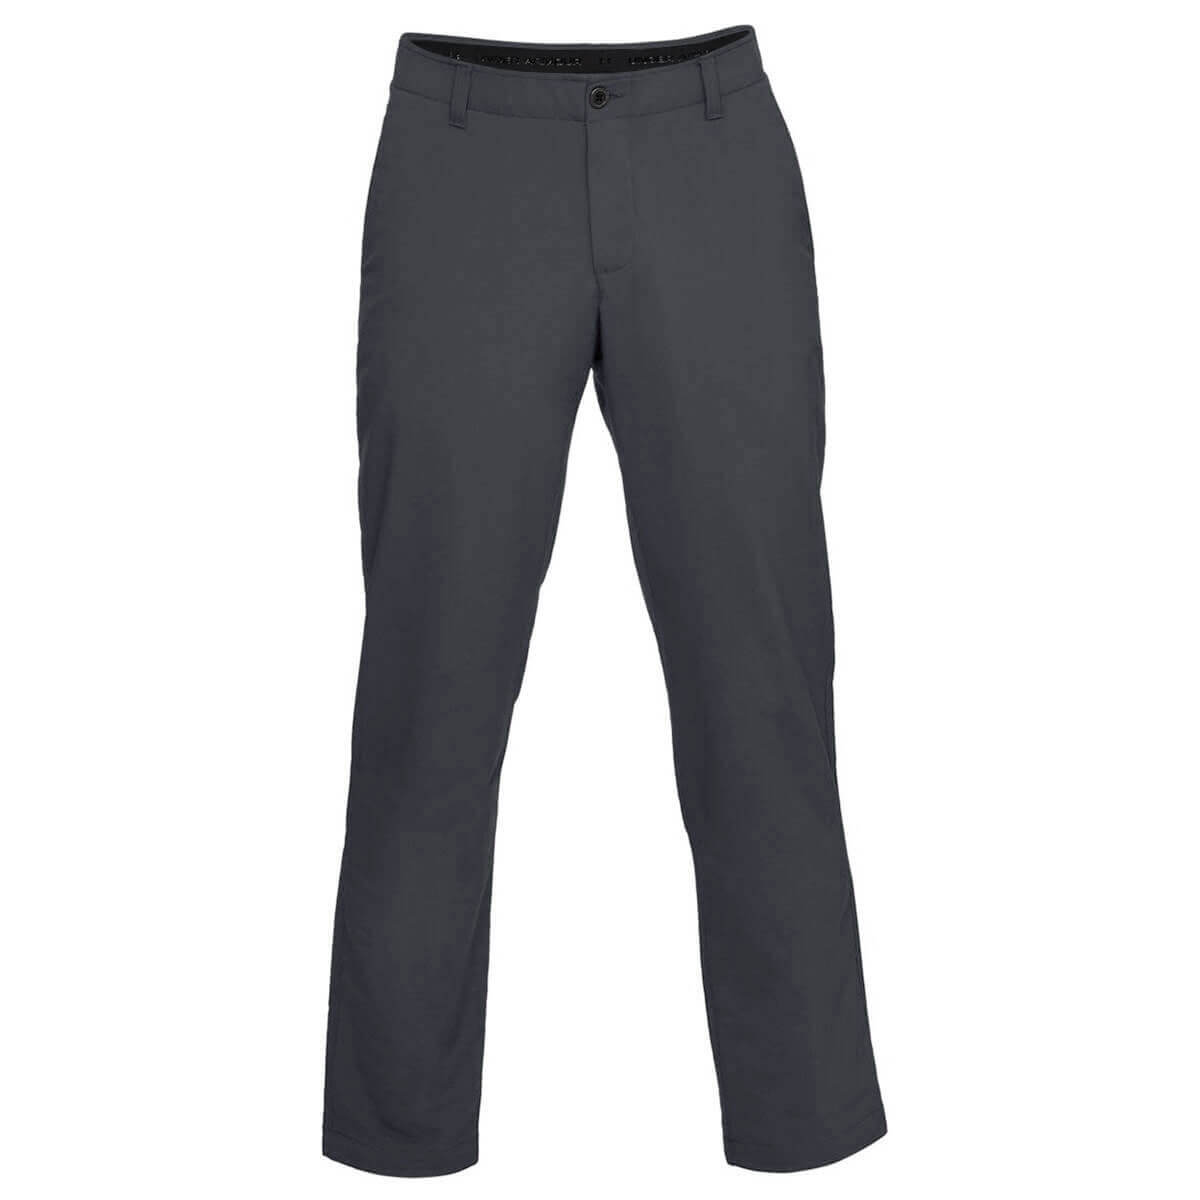 Under-Armour-Mens-2019-EU-Performance-Slim-Taper-Soft-Stretch-Golf-Trousers thumbnail 20